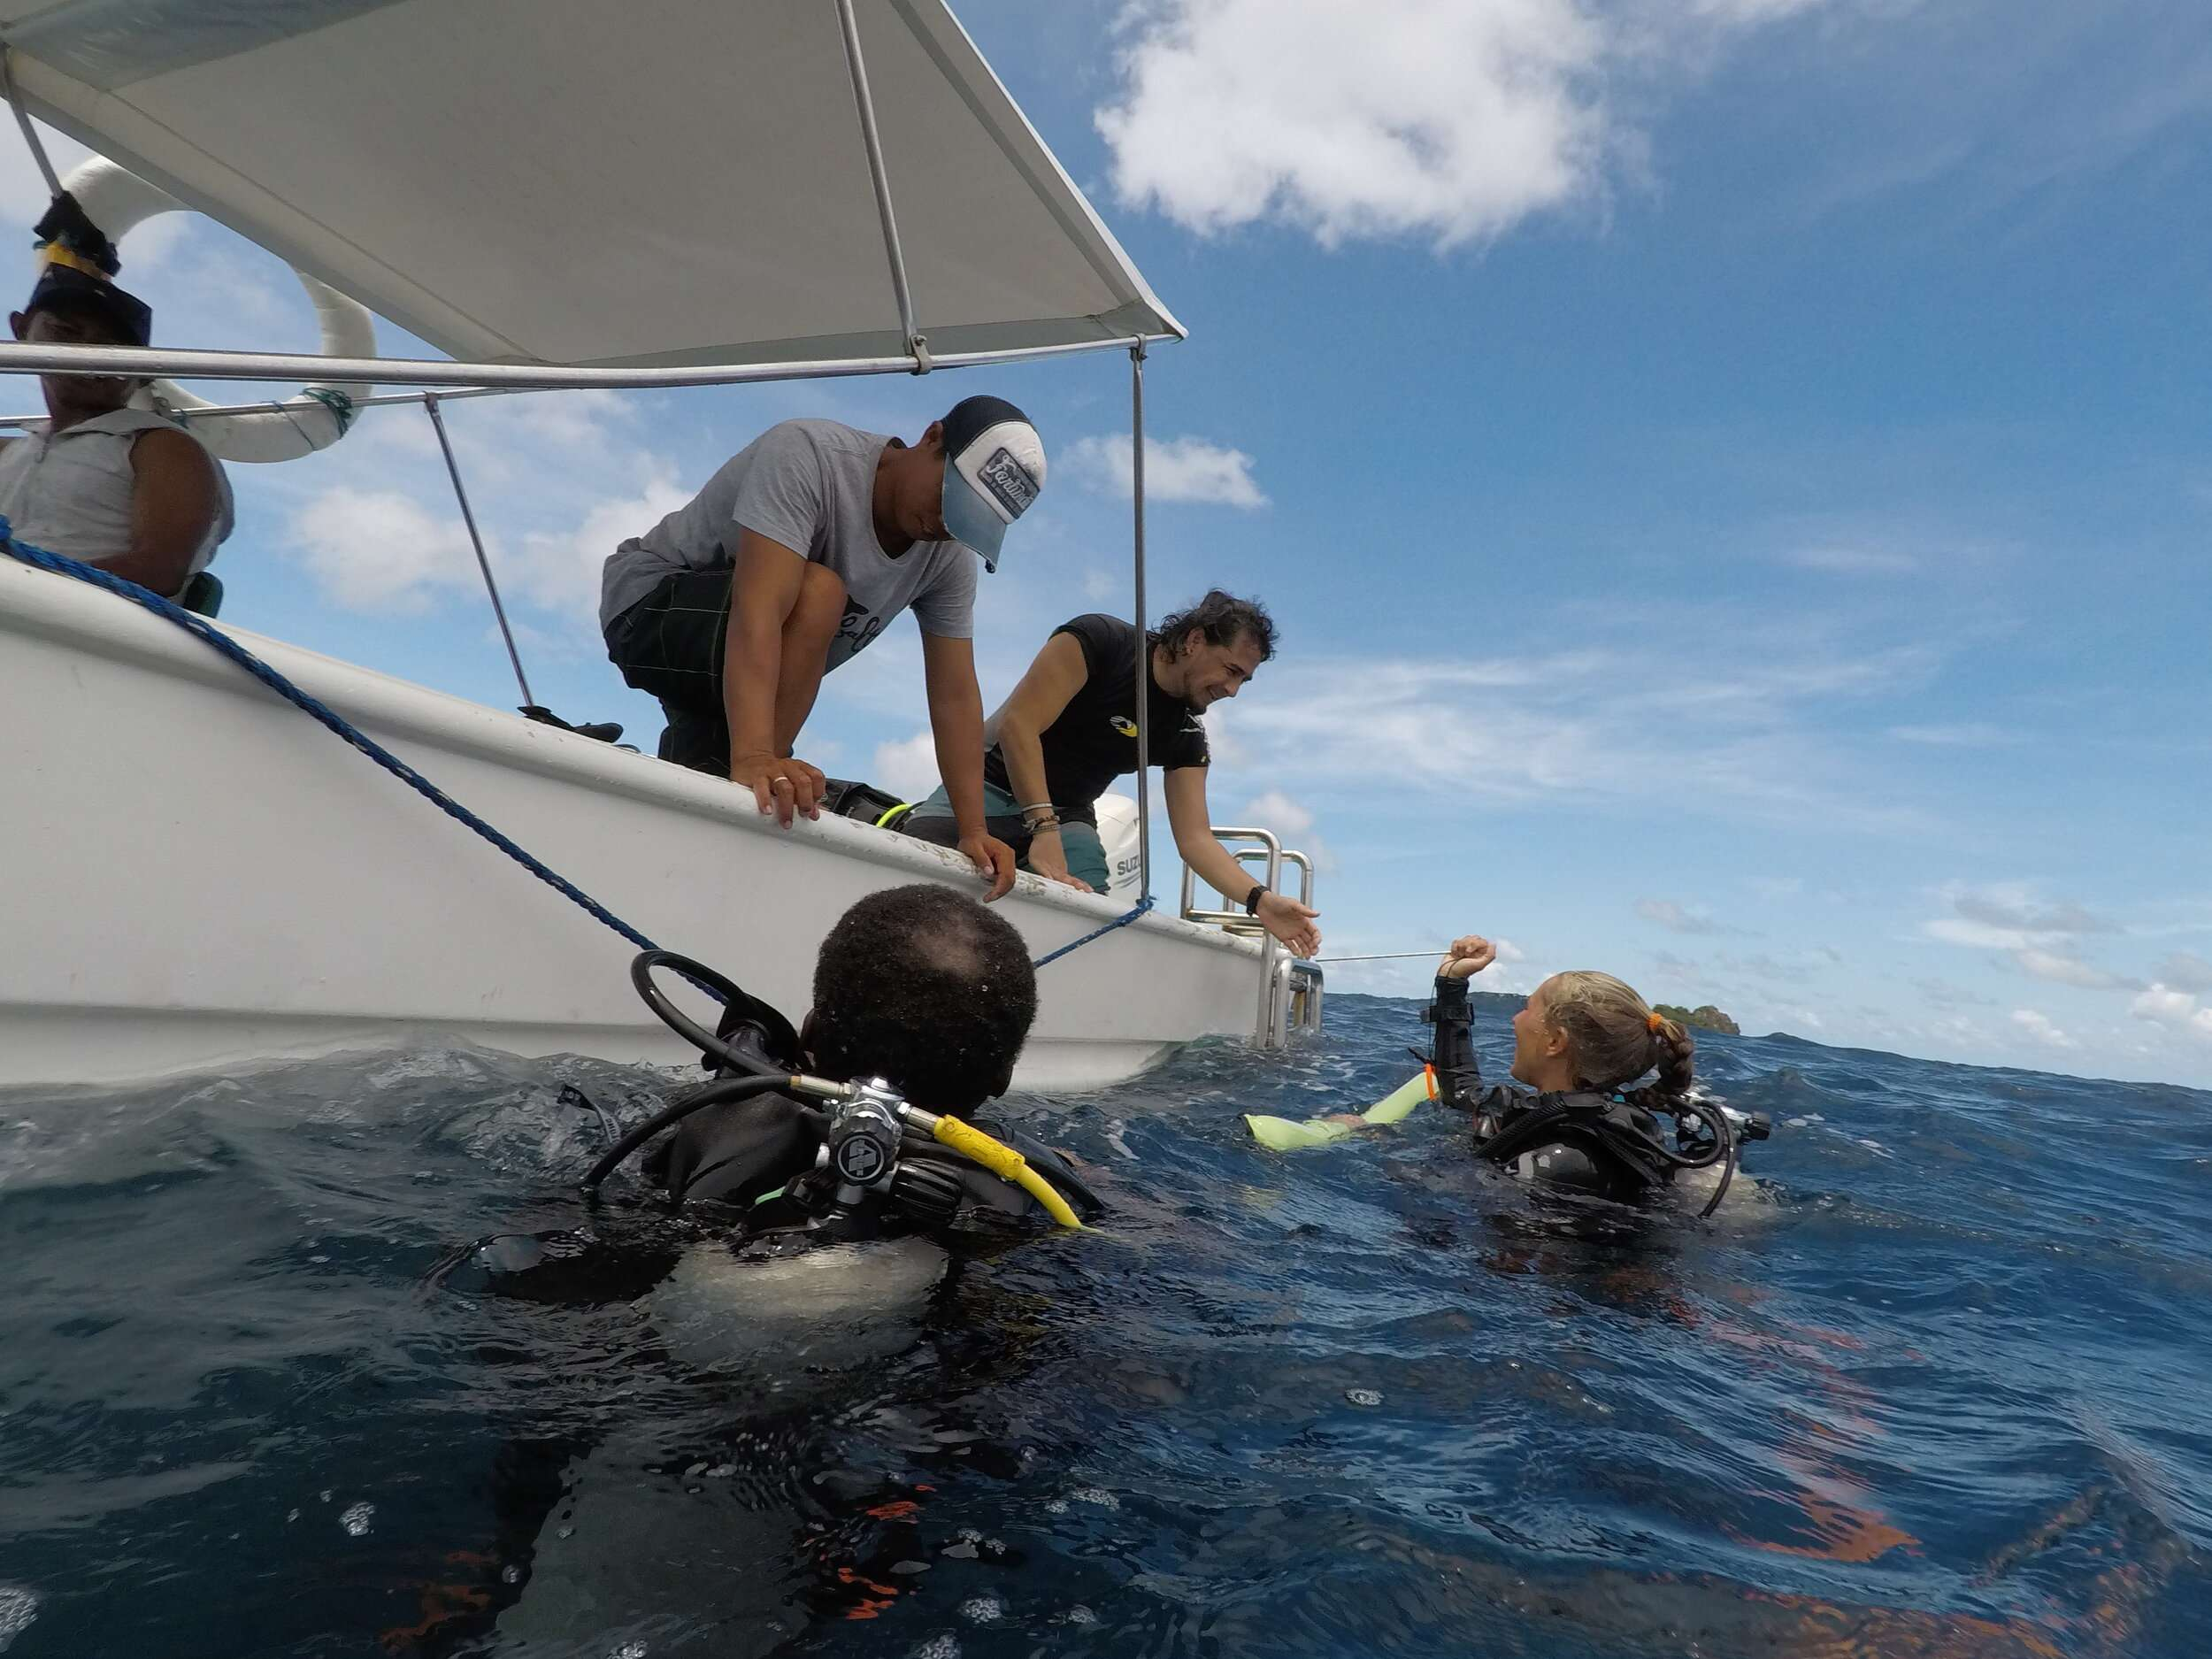 Scuba divers returning to the boat in the Philippines (Dive Sibultan)